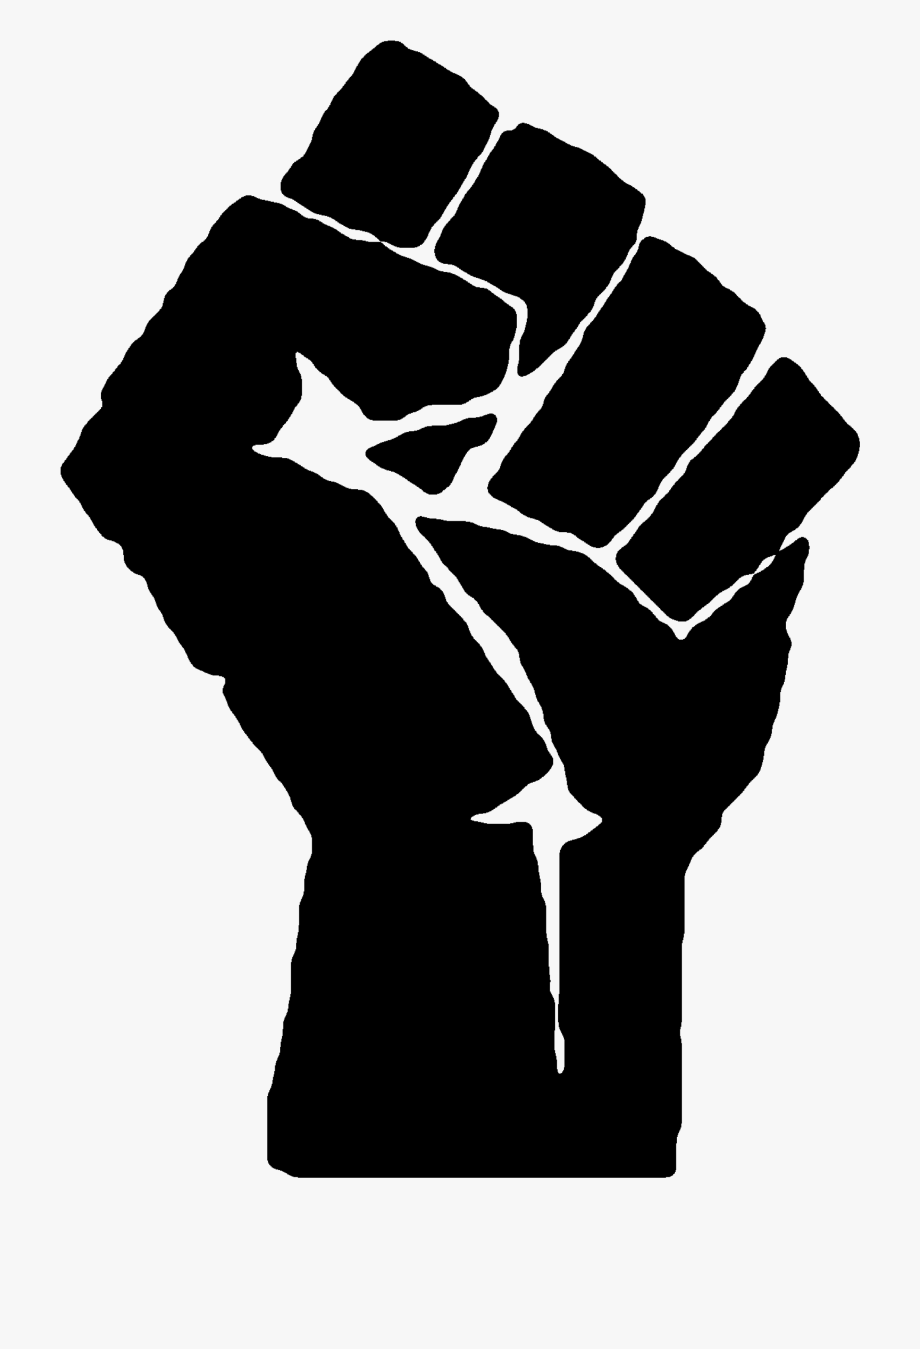 Fist clipart socialism. Symbol free cliparts on